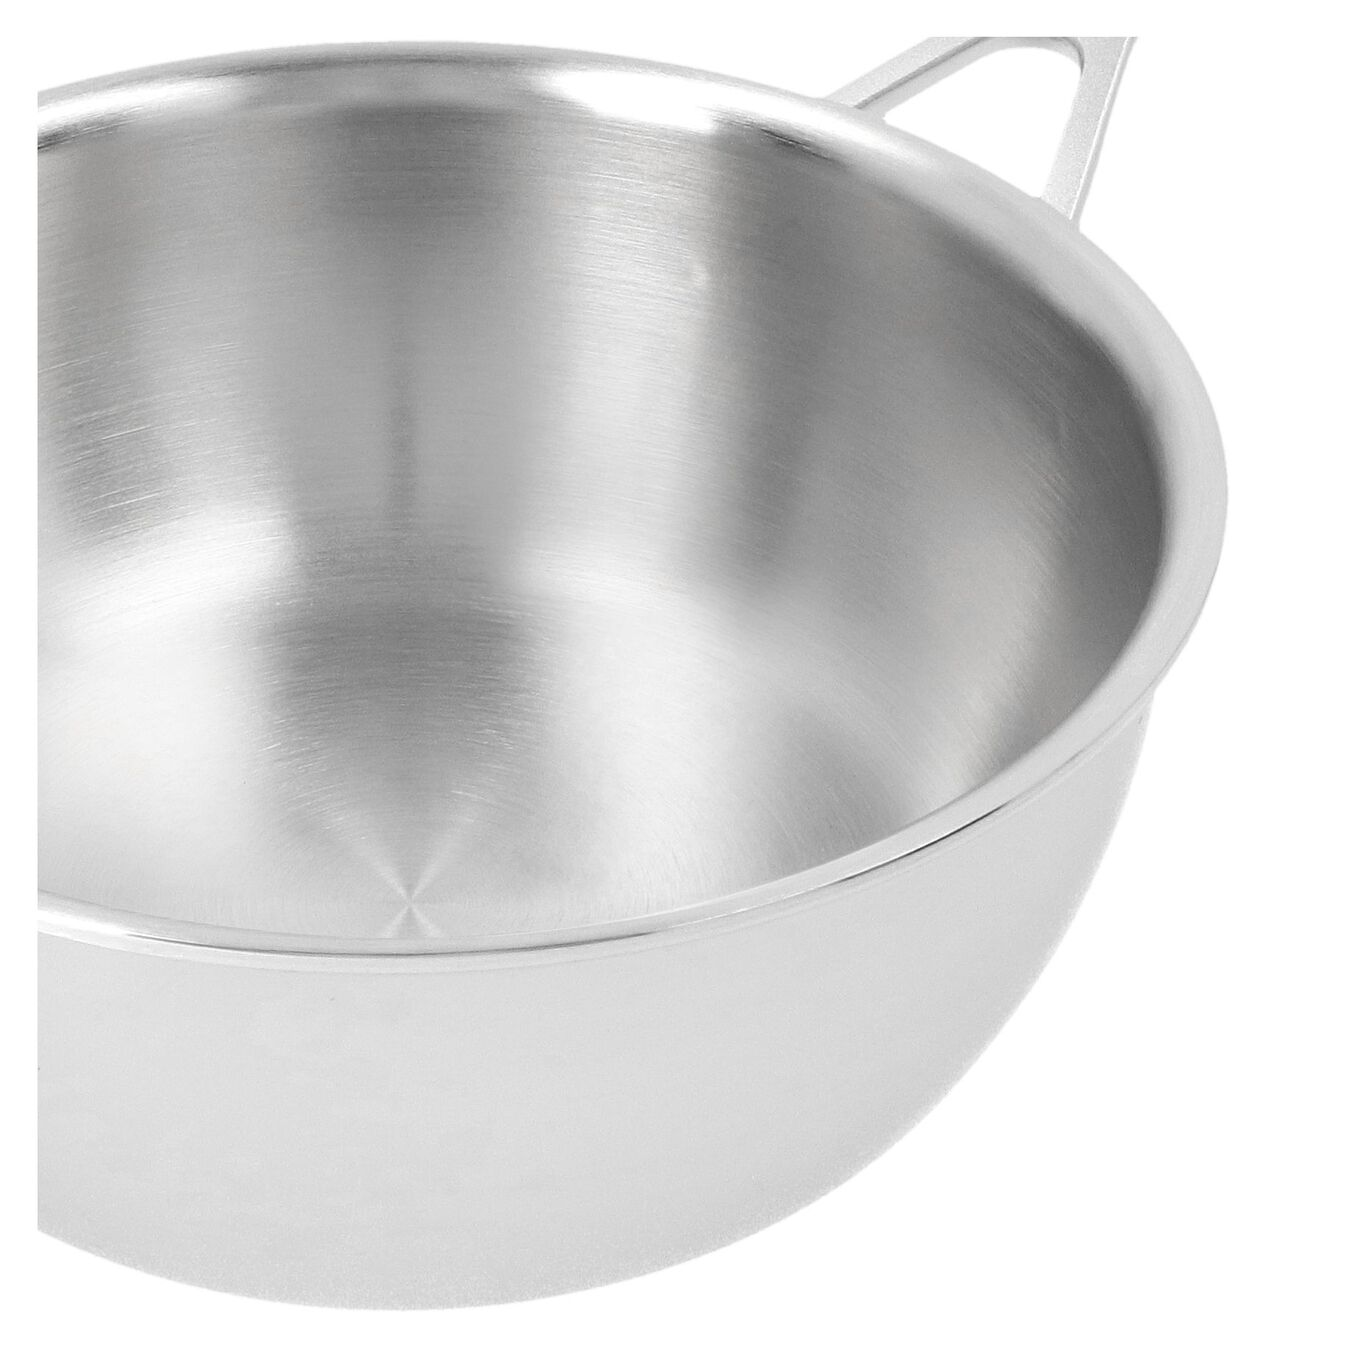 Sauteuse conique 20 cm / 2 l,,large 3